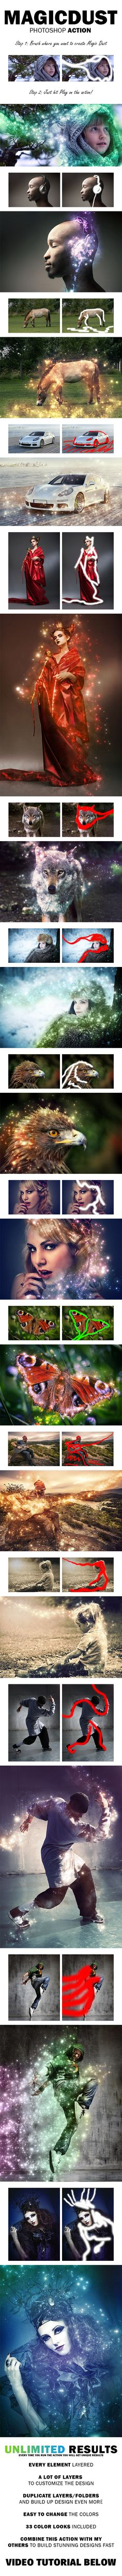 MagicDust Photoshop Action #photoeffect Download: graphicriver.net/...